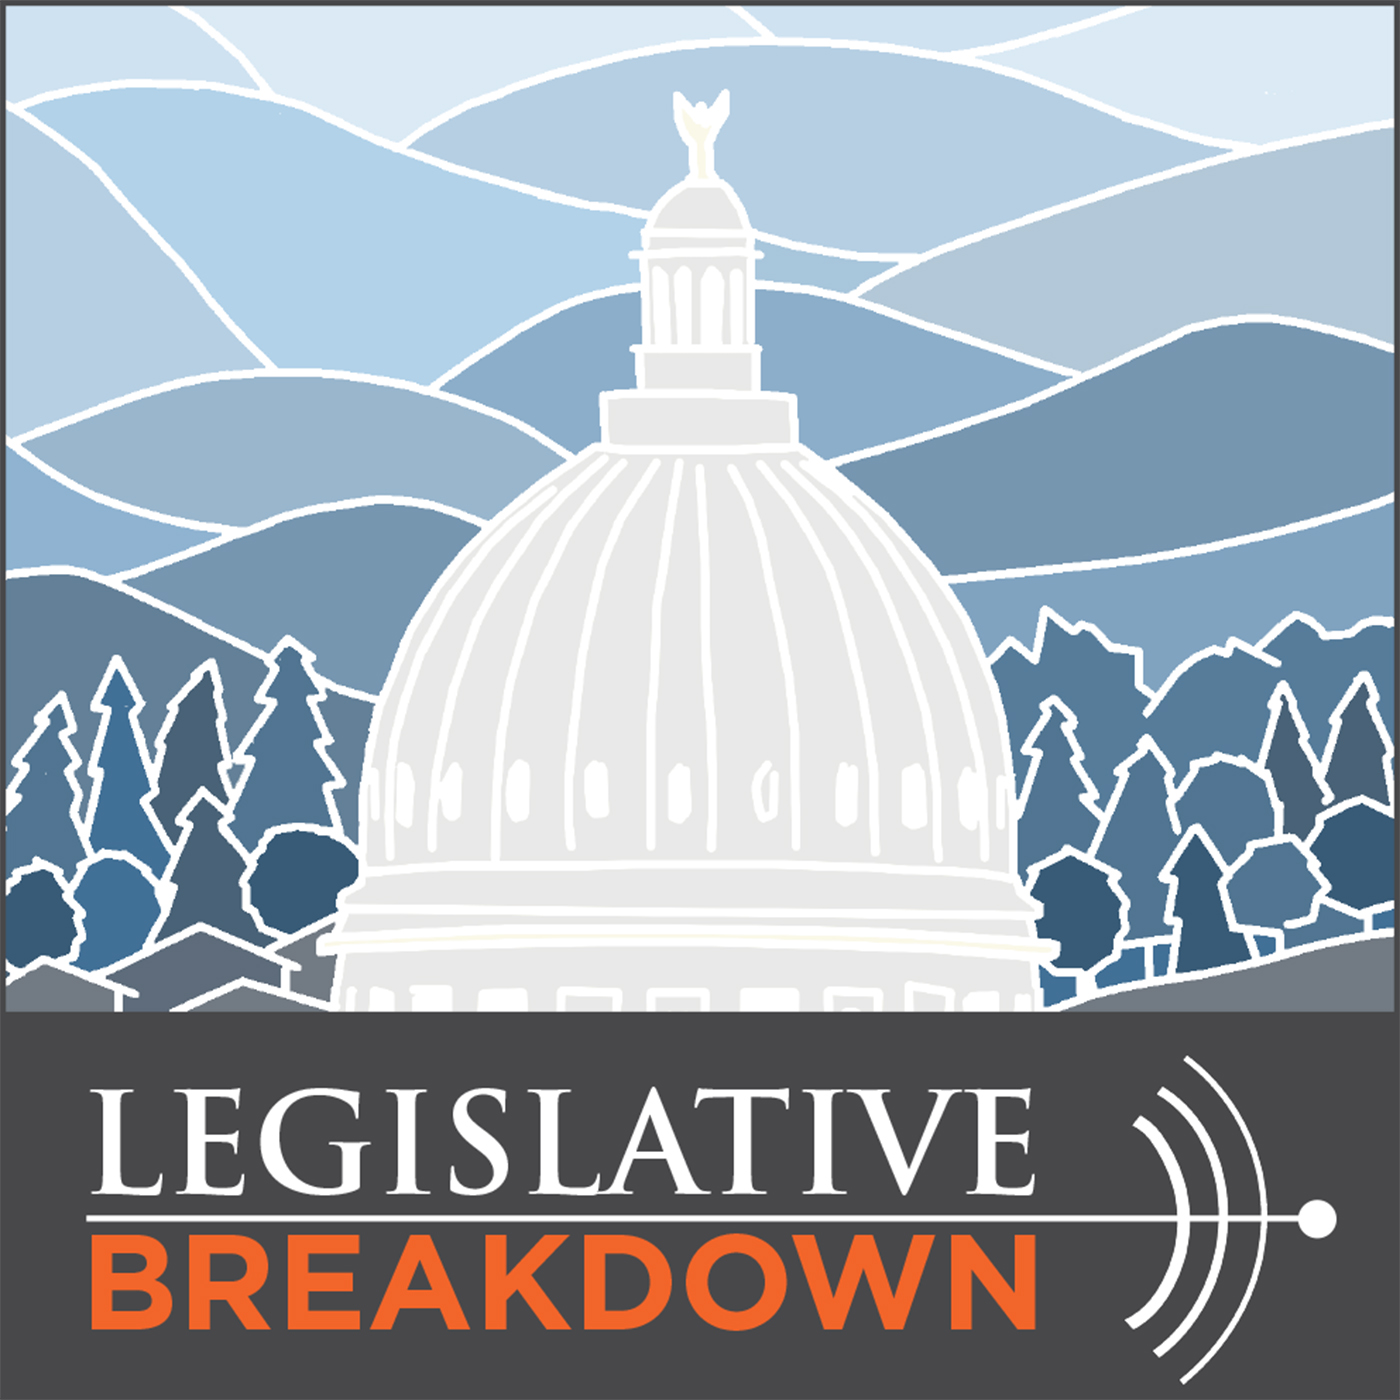 Legislative breakdown - In this seasonal, weekly podcast, we break down the Idaho Legislature so you don't have to. We dig into what'shappening, drill down into the whyand find out howit affects you.The Legislature makes the laws, controls the money and creates the rules that govern life in Idaho. Each Friday, we ask these questions: What just happened? How does it affect your life?